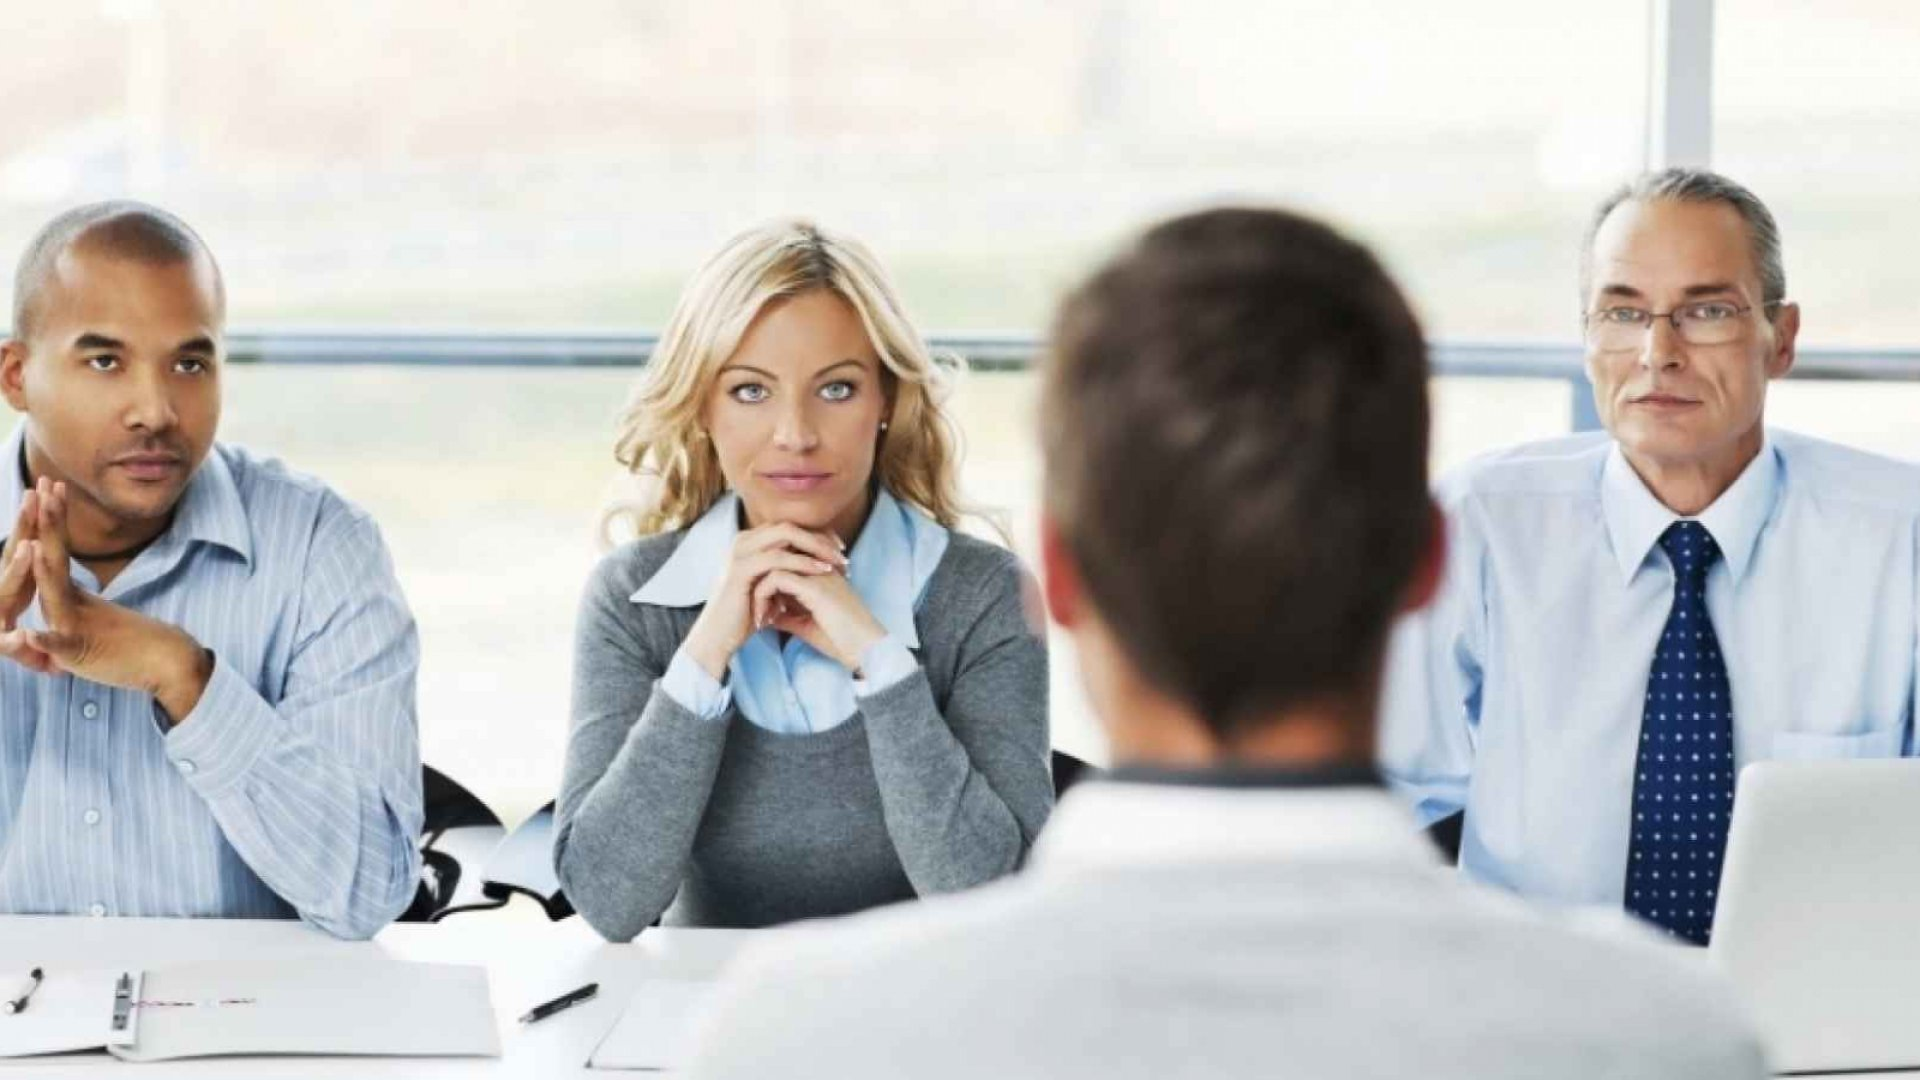 8 Creative Interview Questions to Identify the Right Candidate